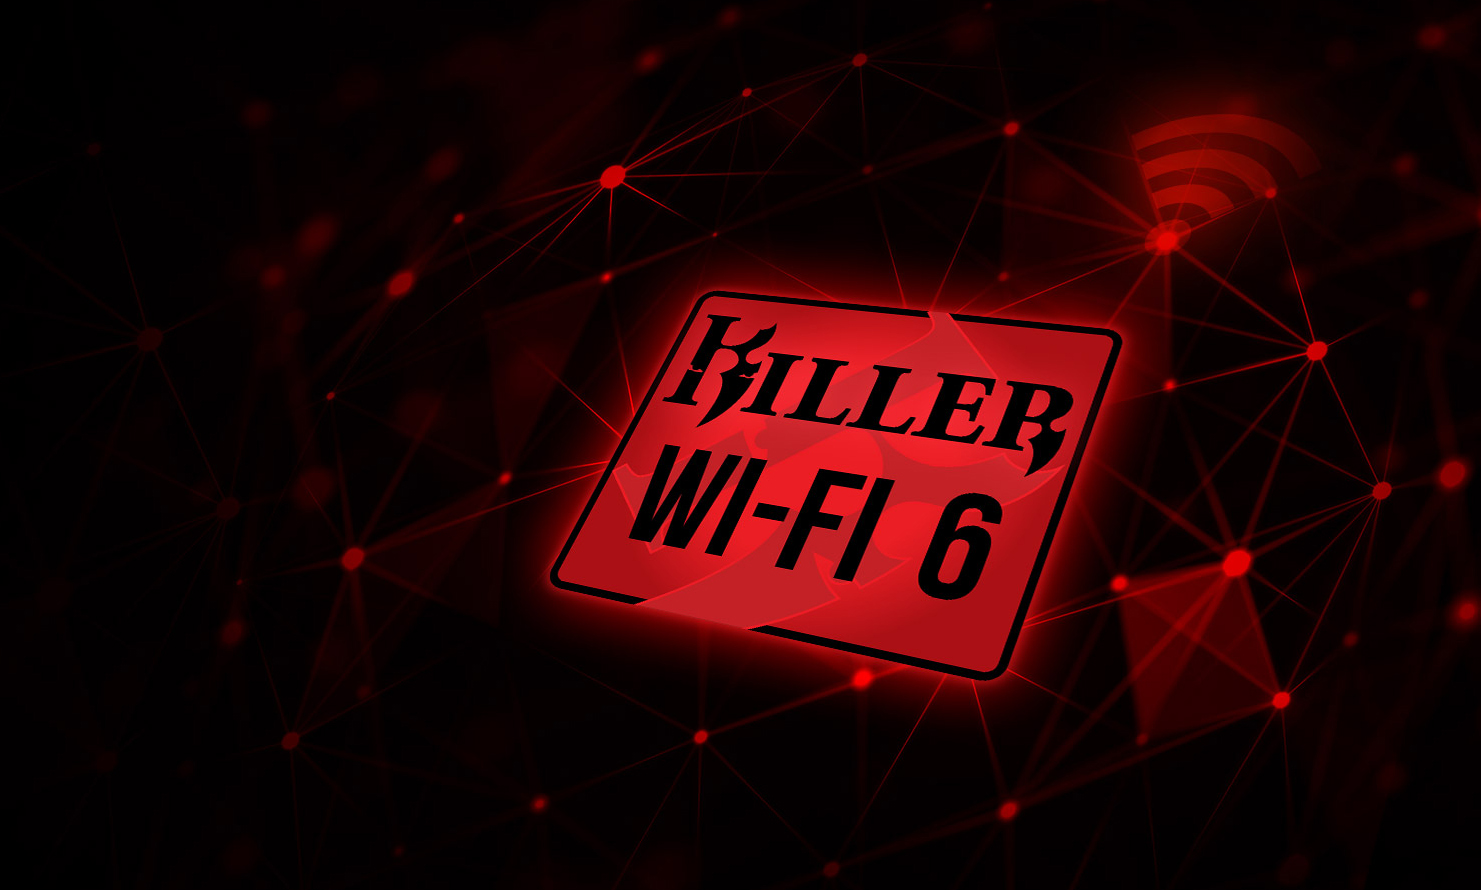 wifi 6 icon in a red abstract background